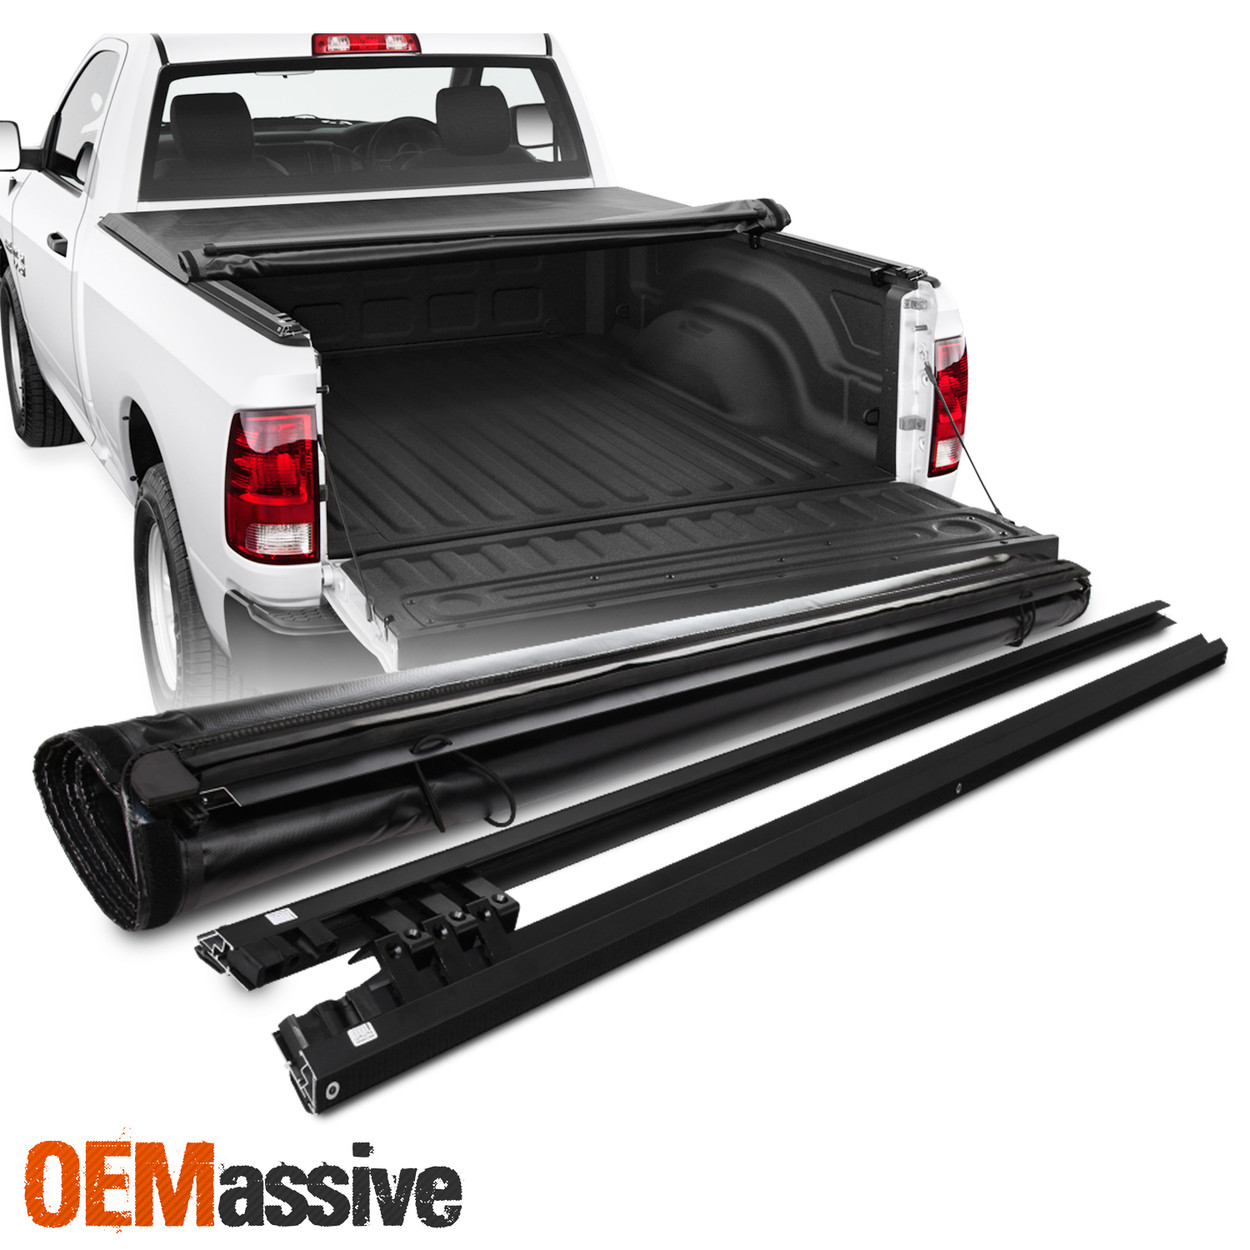 Tonneau Cover For 2009 18 Dodge Ram 1500 2010 18 2500 3500 78 Bed Soft Roll Up Oemassive